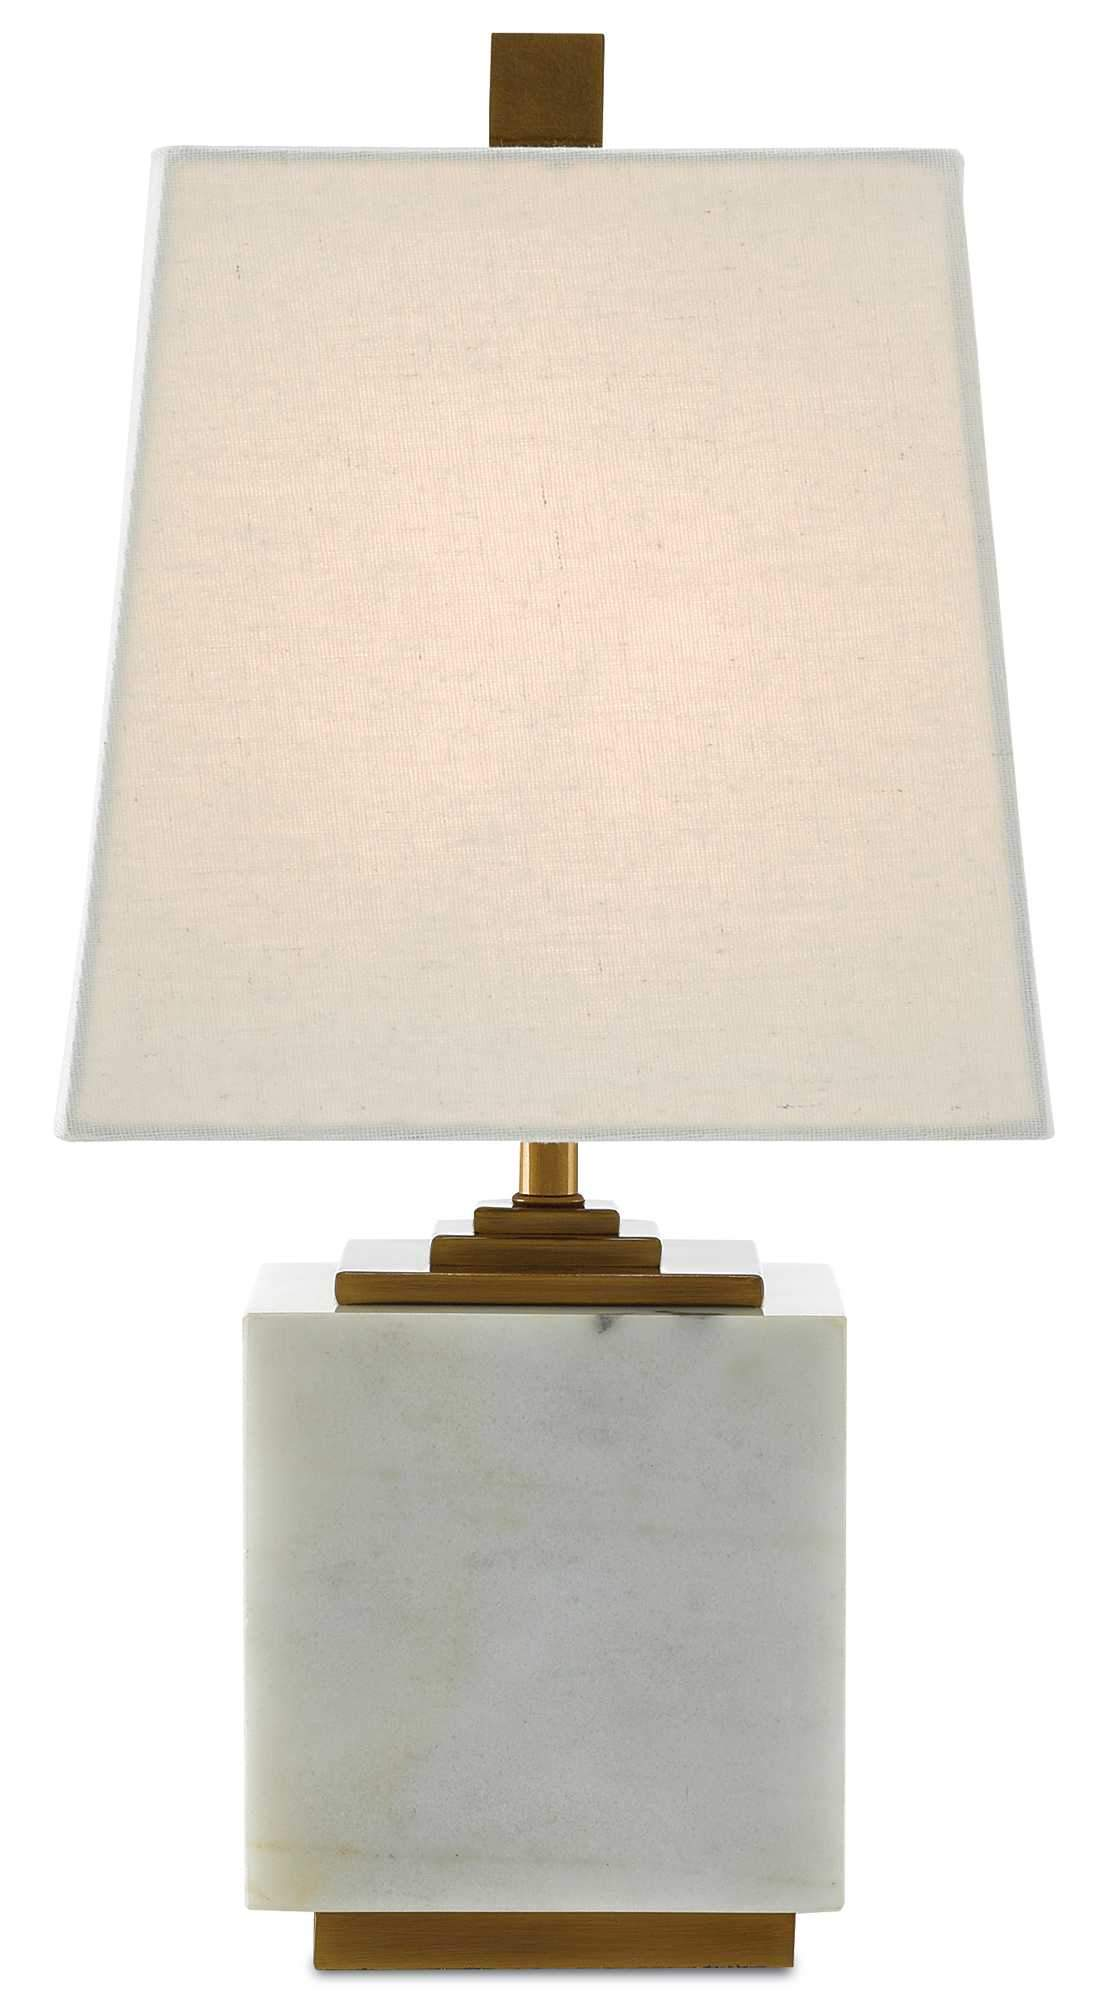 Currey and Company Annelore Table Lamp 6000-0215 - LOVECUP